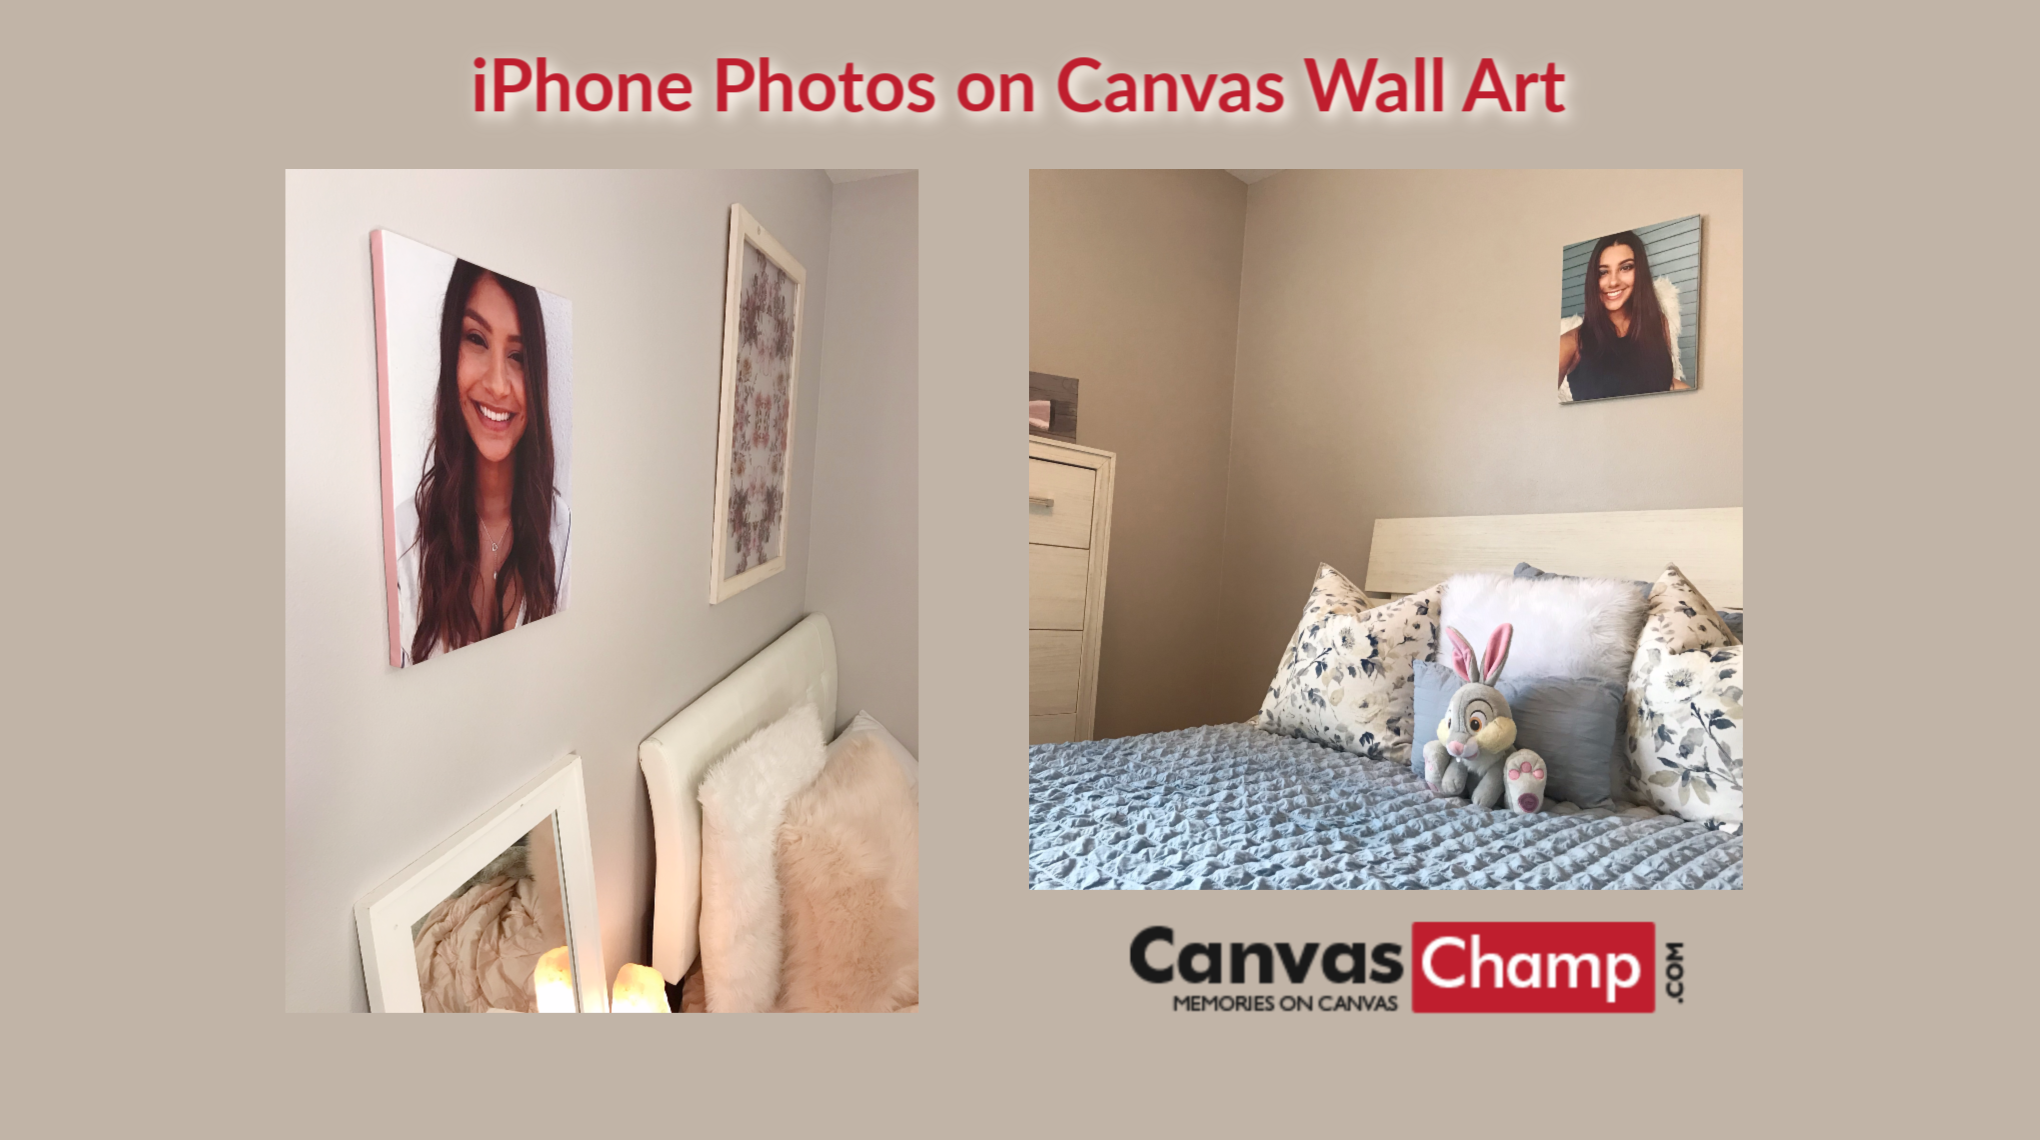 iPhone Photos on Canvas Wall Art from Canvas Champ